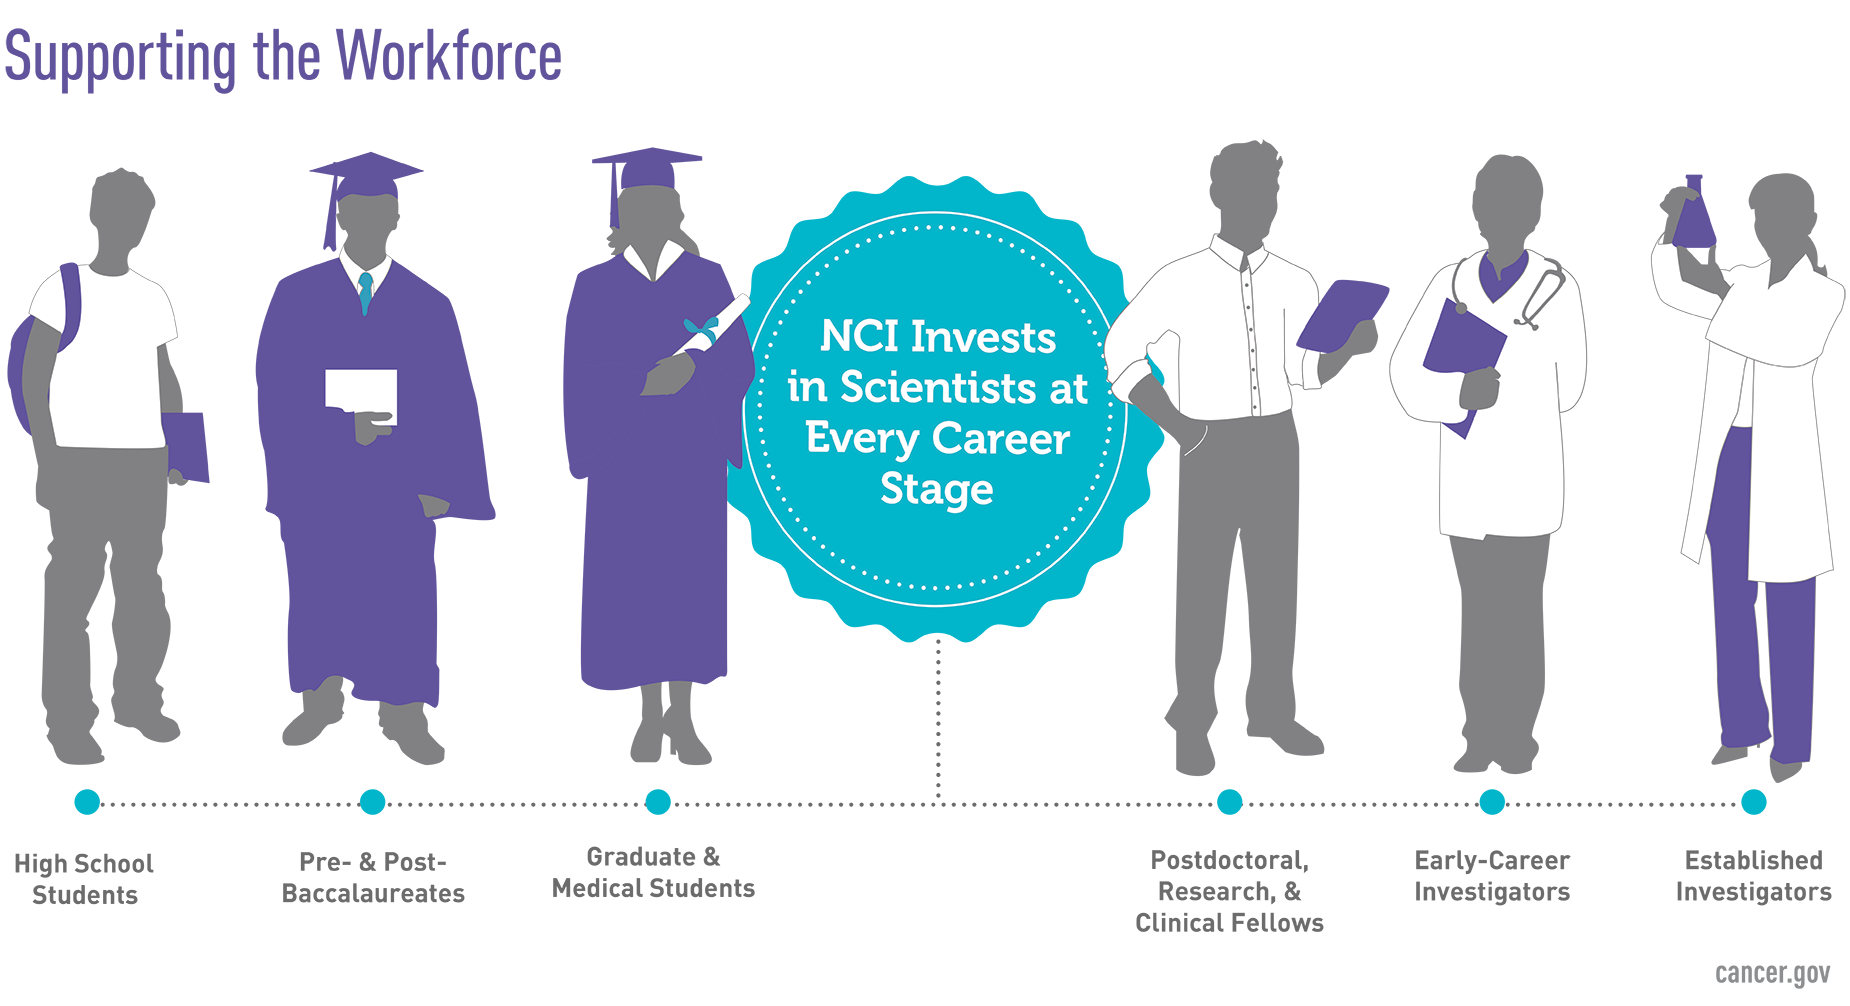 NCI invests in scientists throughout their career from high school onward.